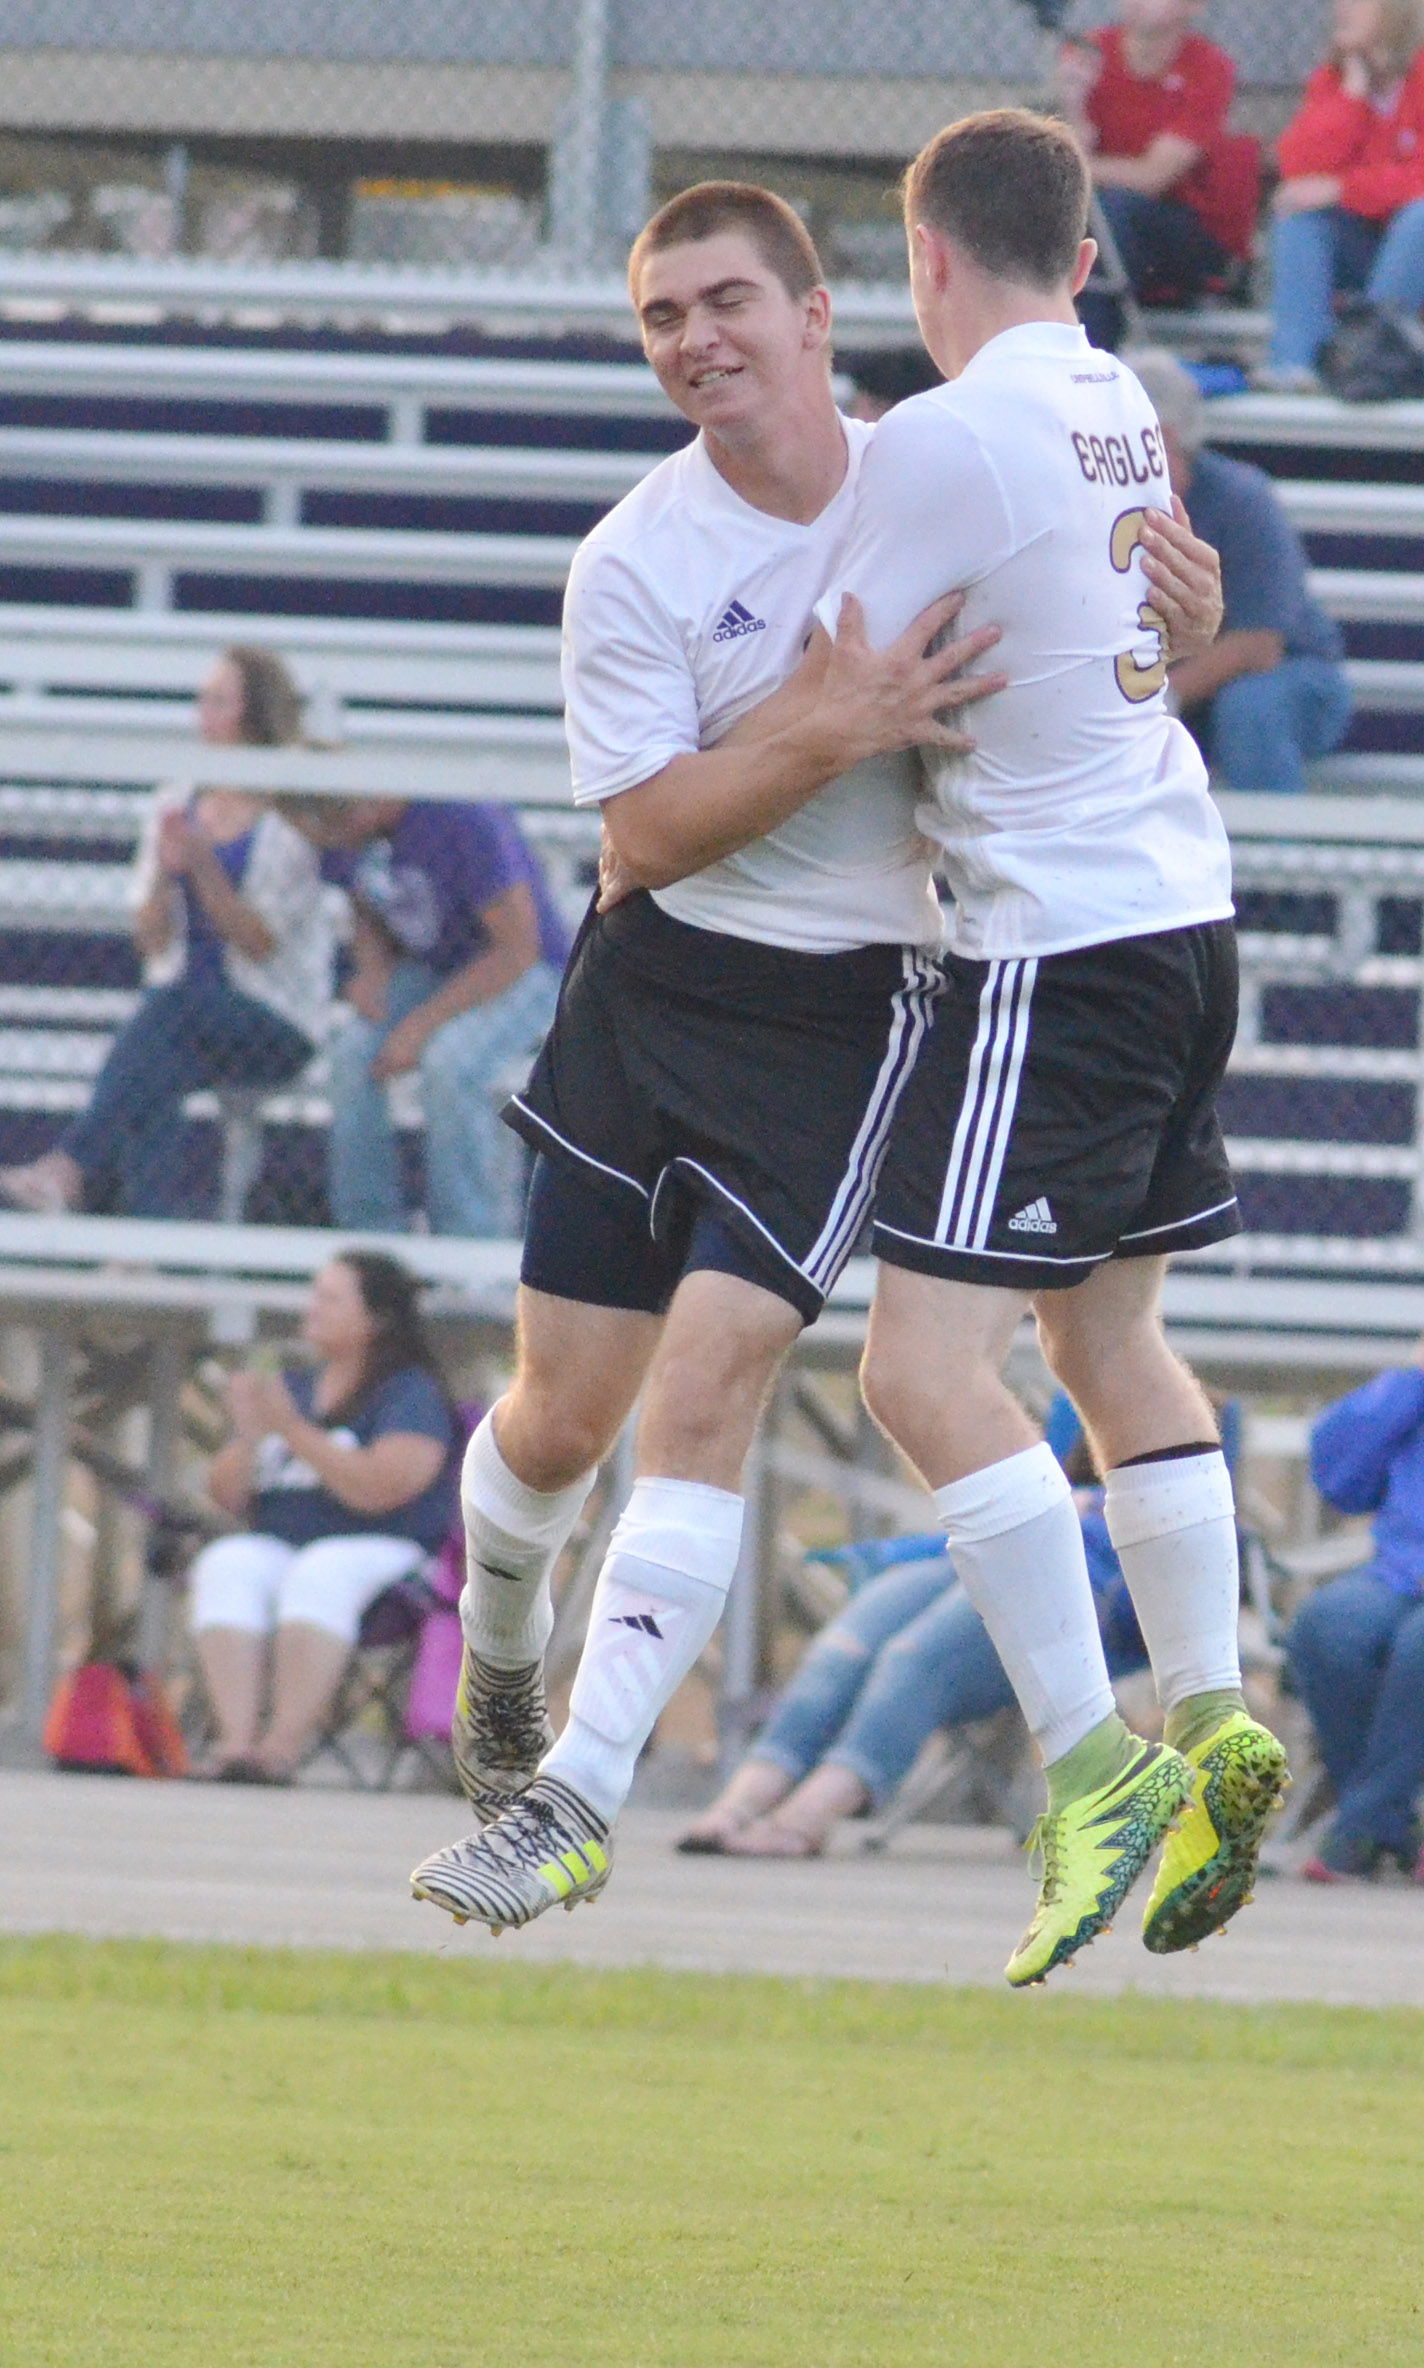 CHS seniors Cass Kidwell, at left, and Bryce Richardson celebrate a goal.